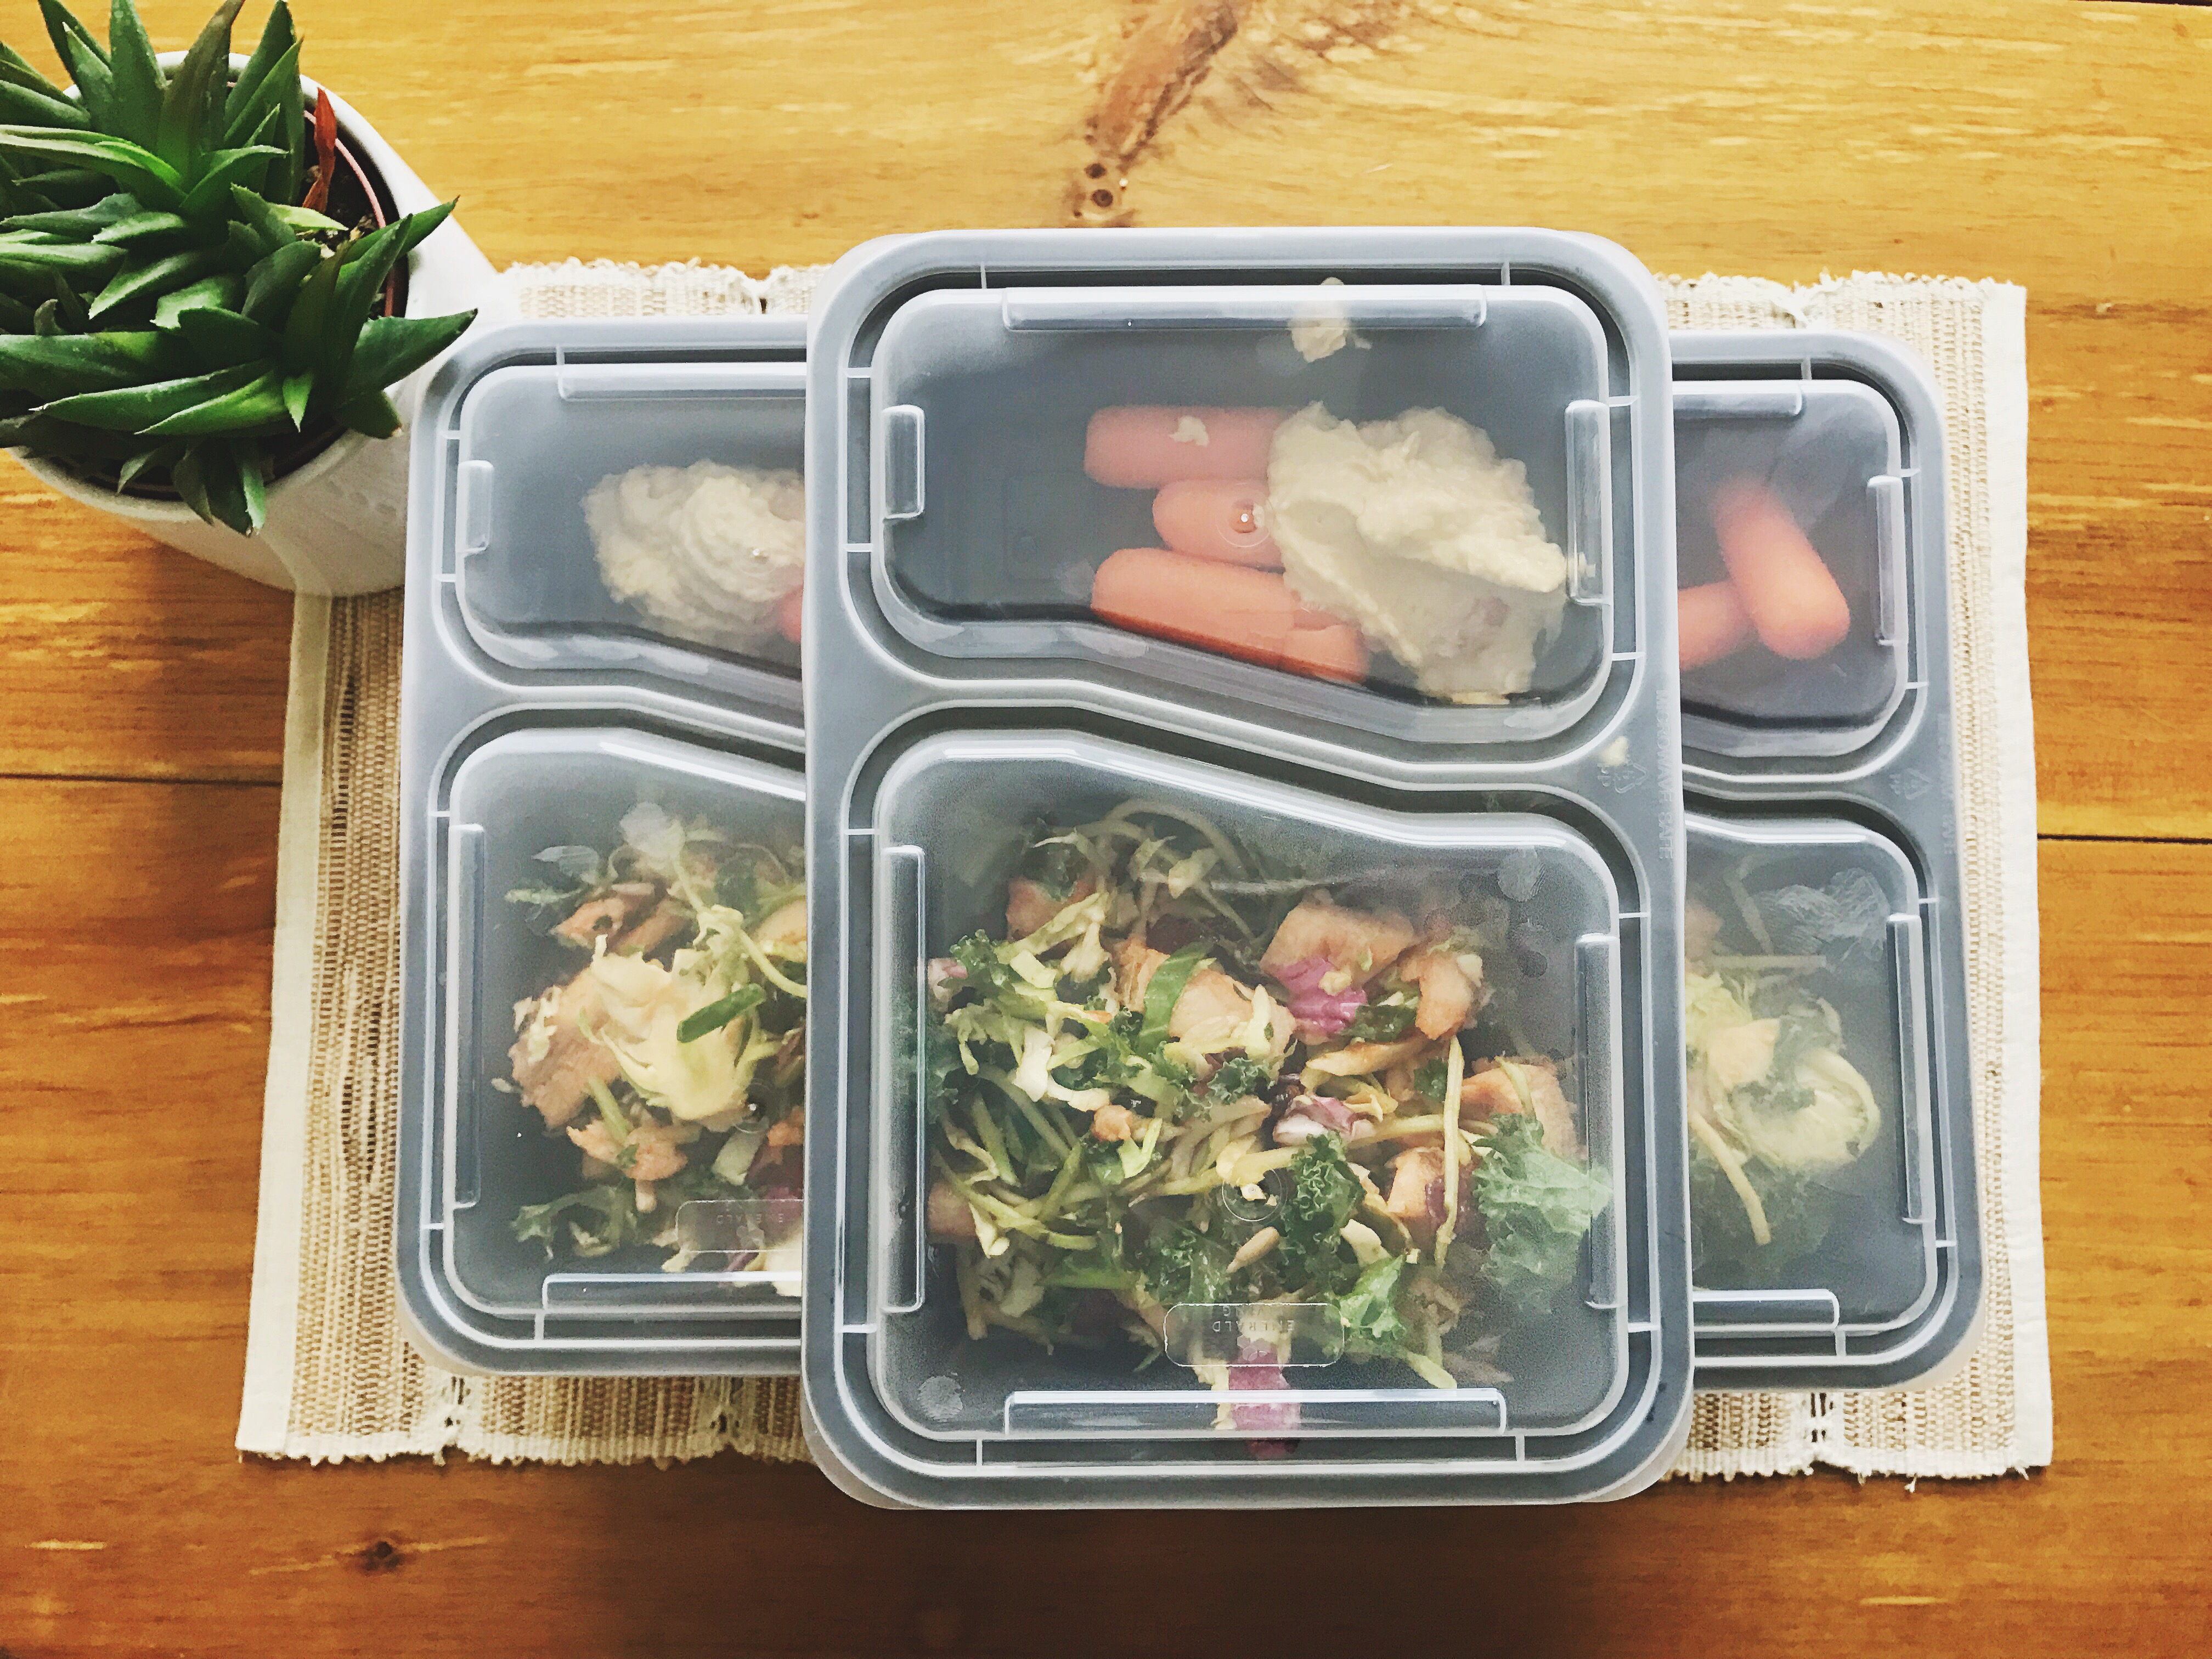 How to Decide to Start Meal Prepping in 10 Ways